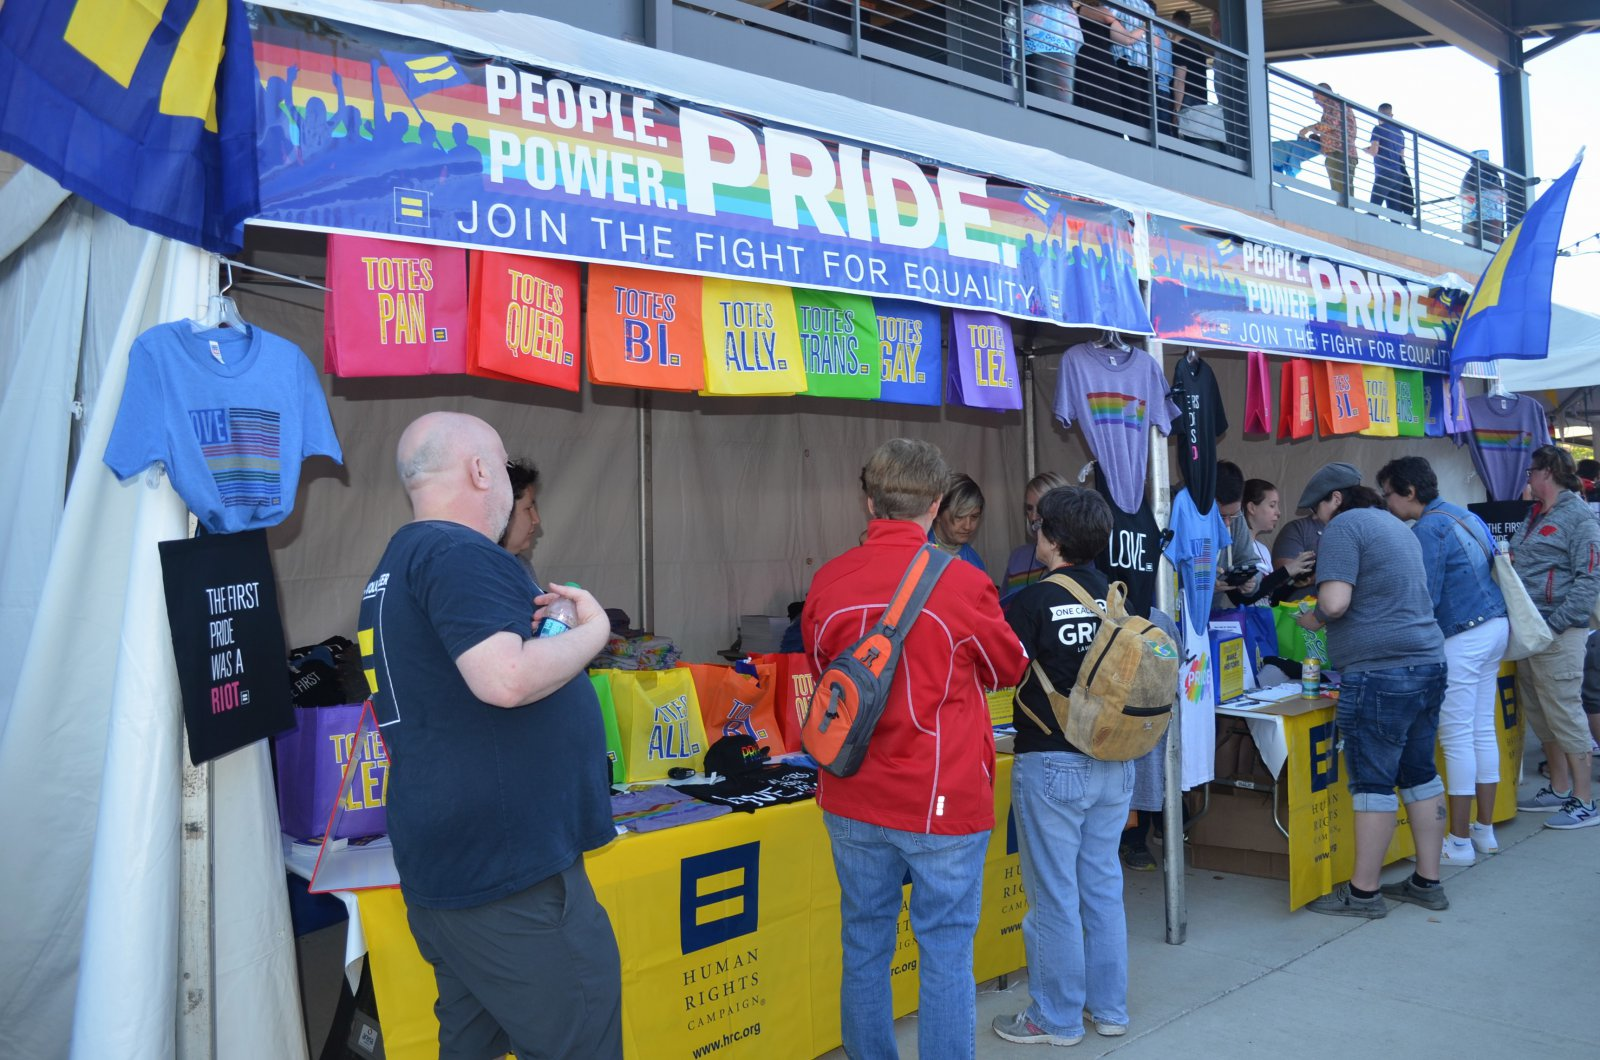 Human Rights Campaign state at PrideFest 2019